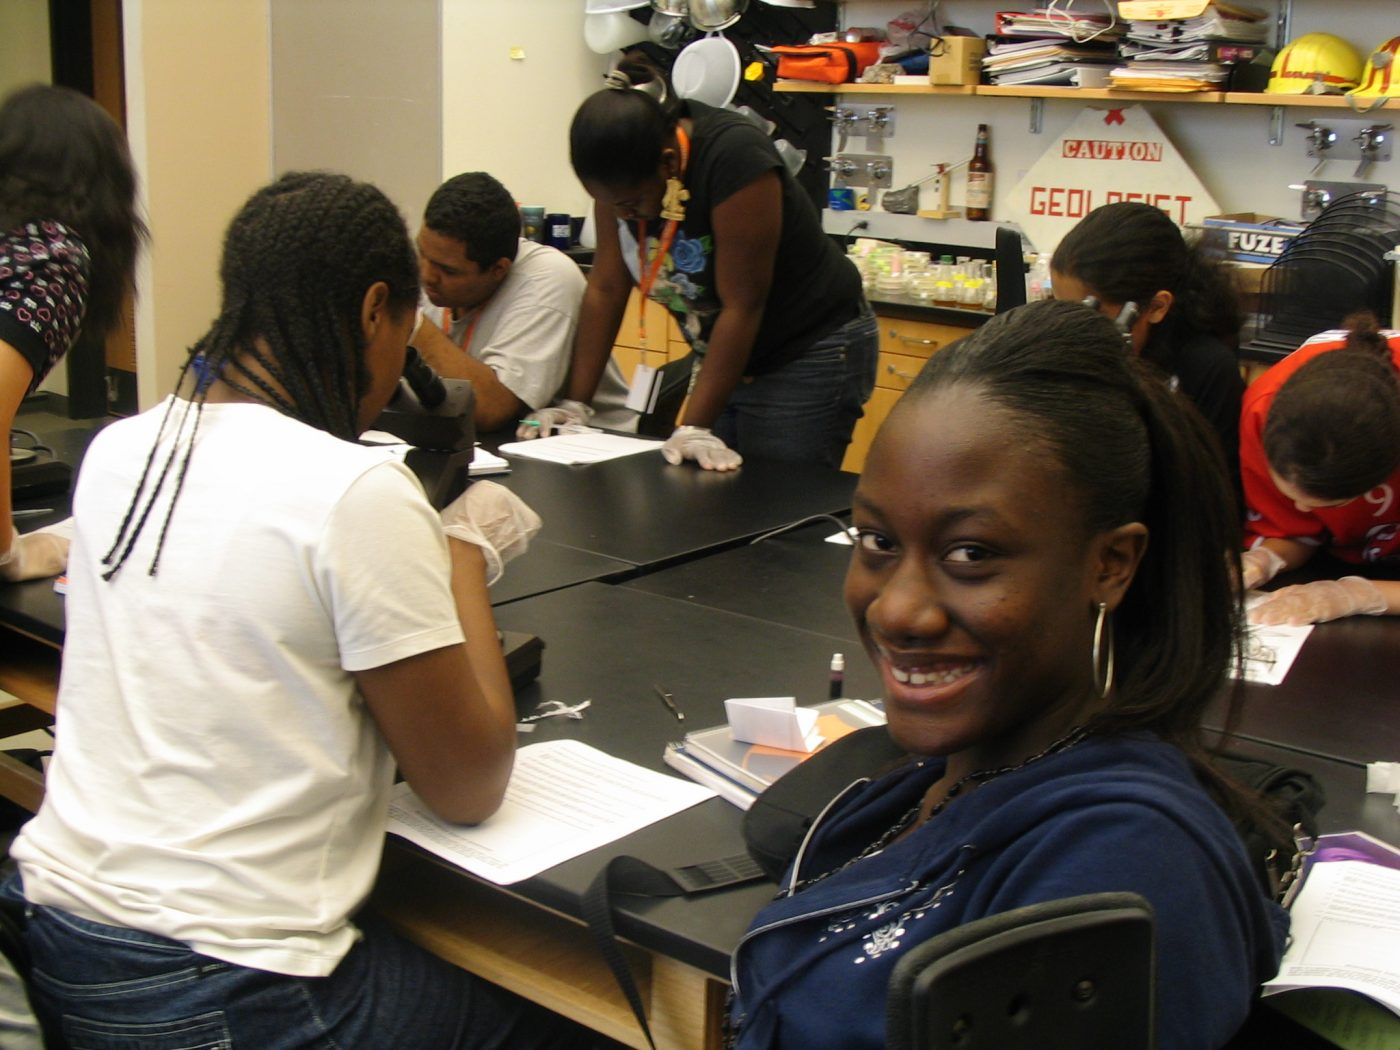 Scholar from the Class of 2010 smiling at the camera during her senior science course.